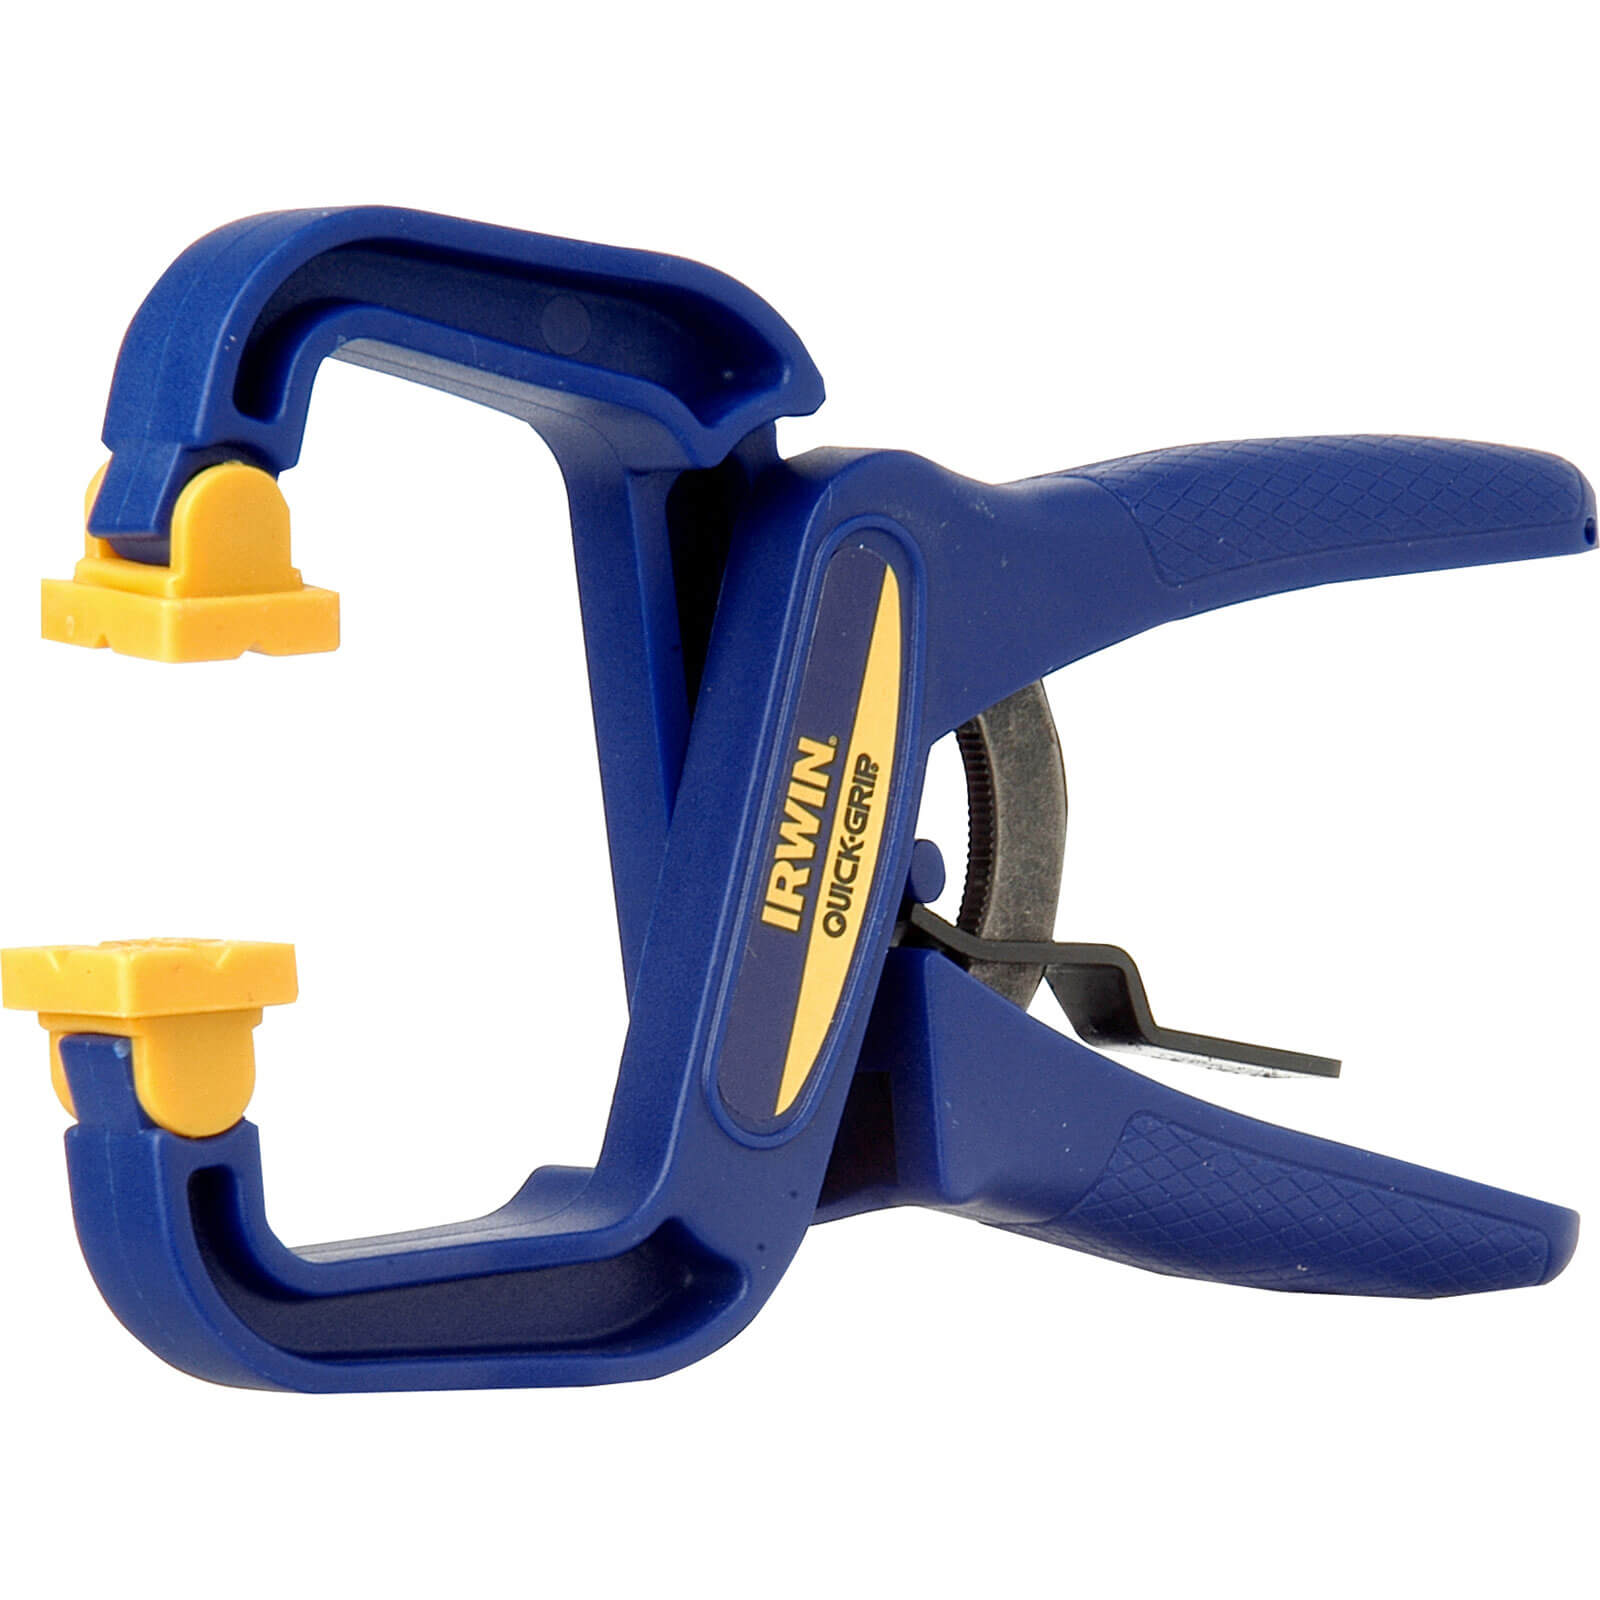 Image of Quick Grip Handy Clamp 40mm